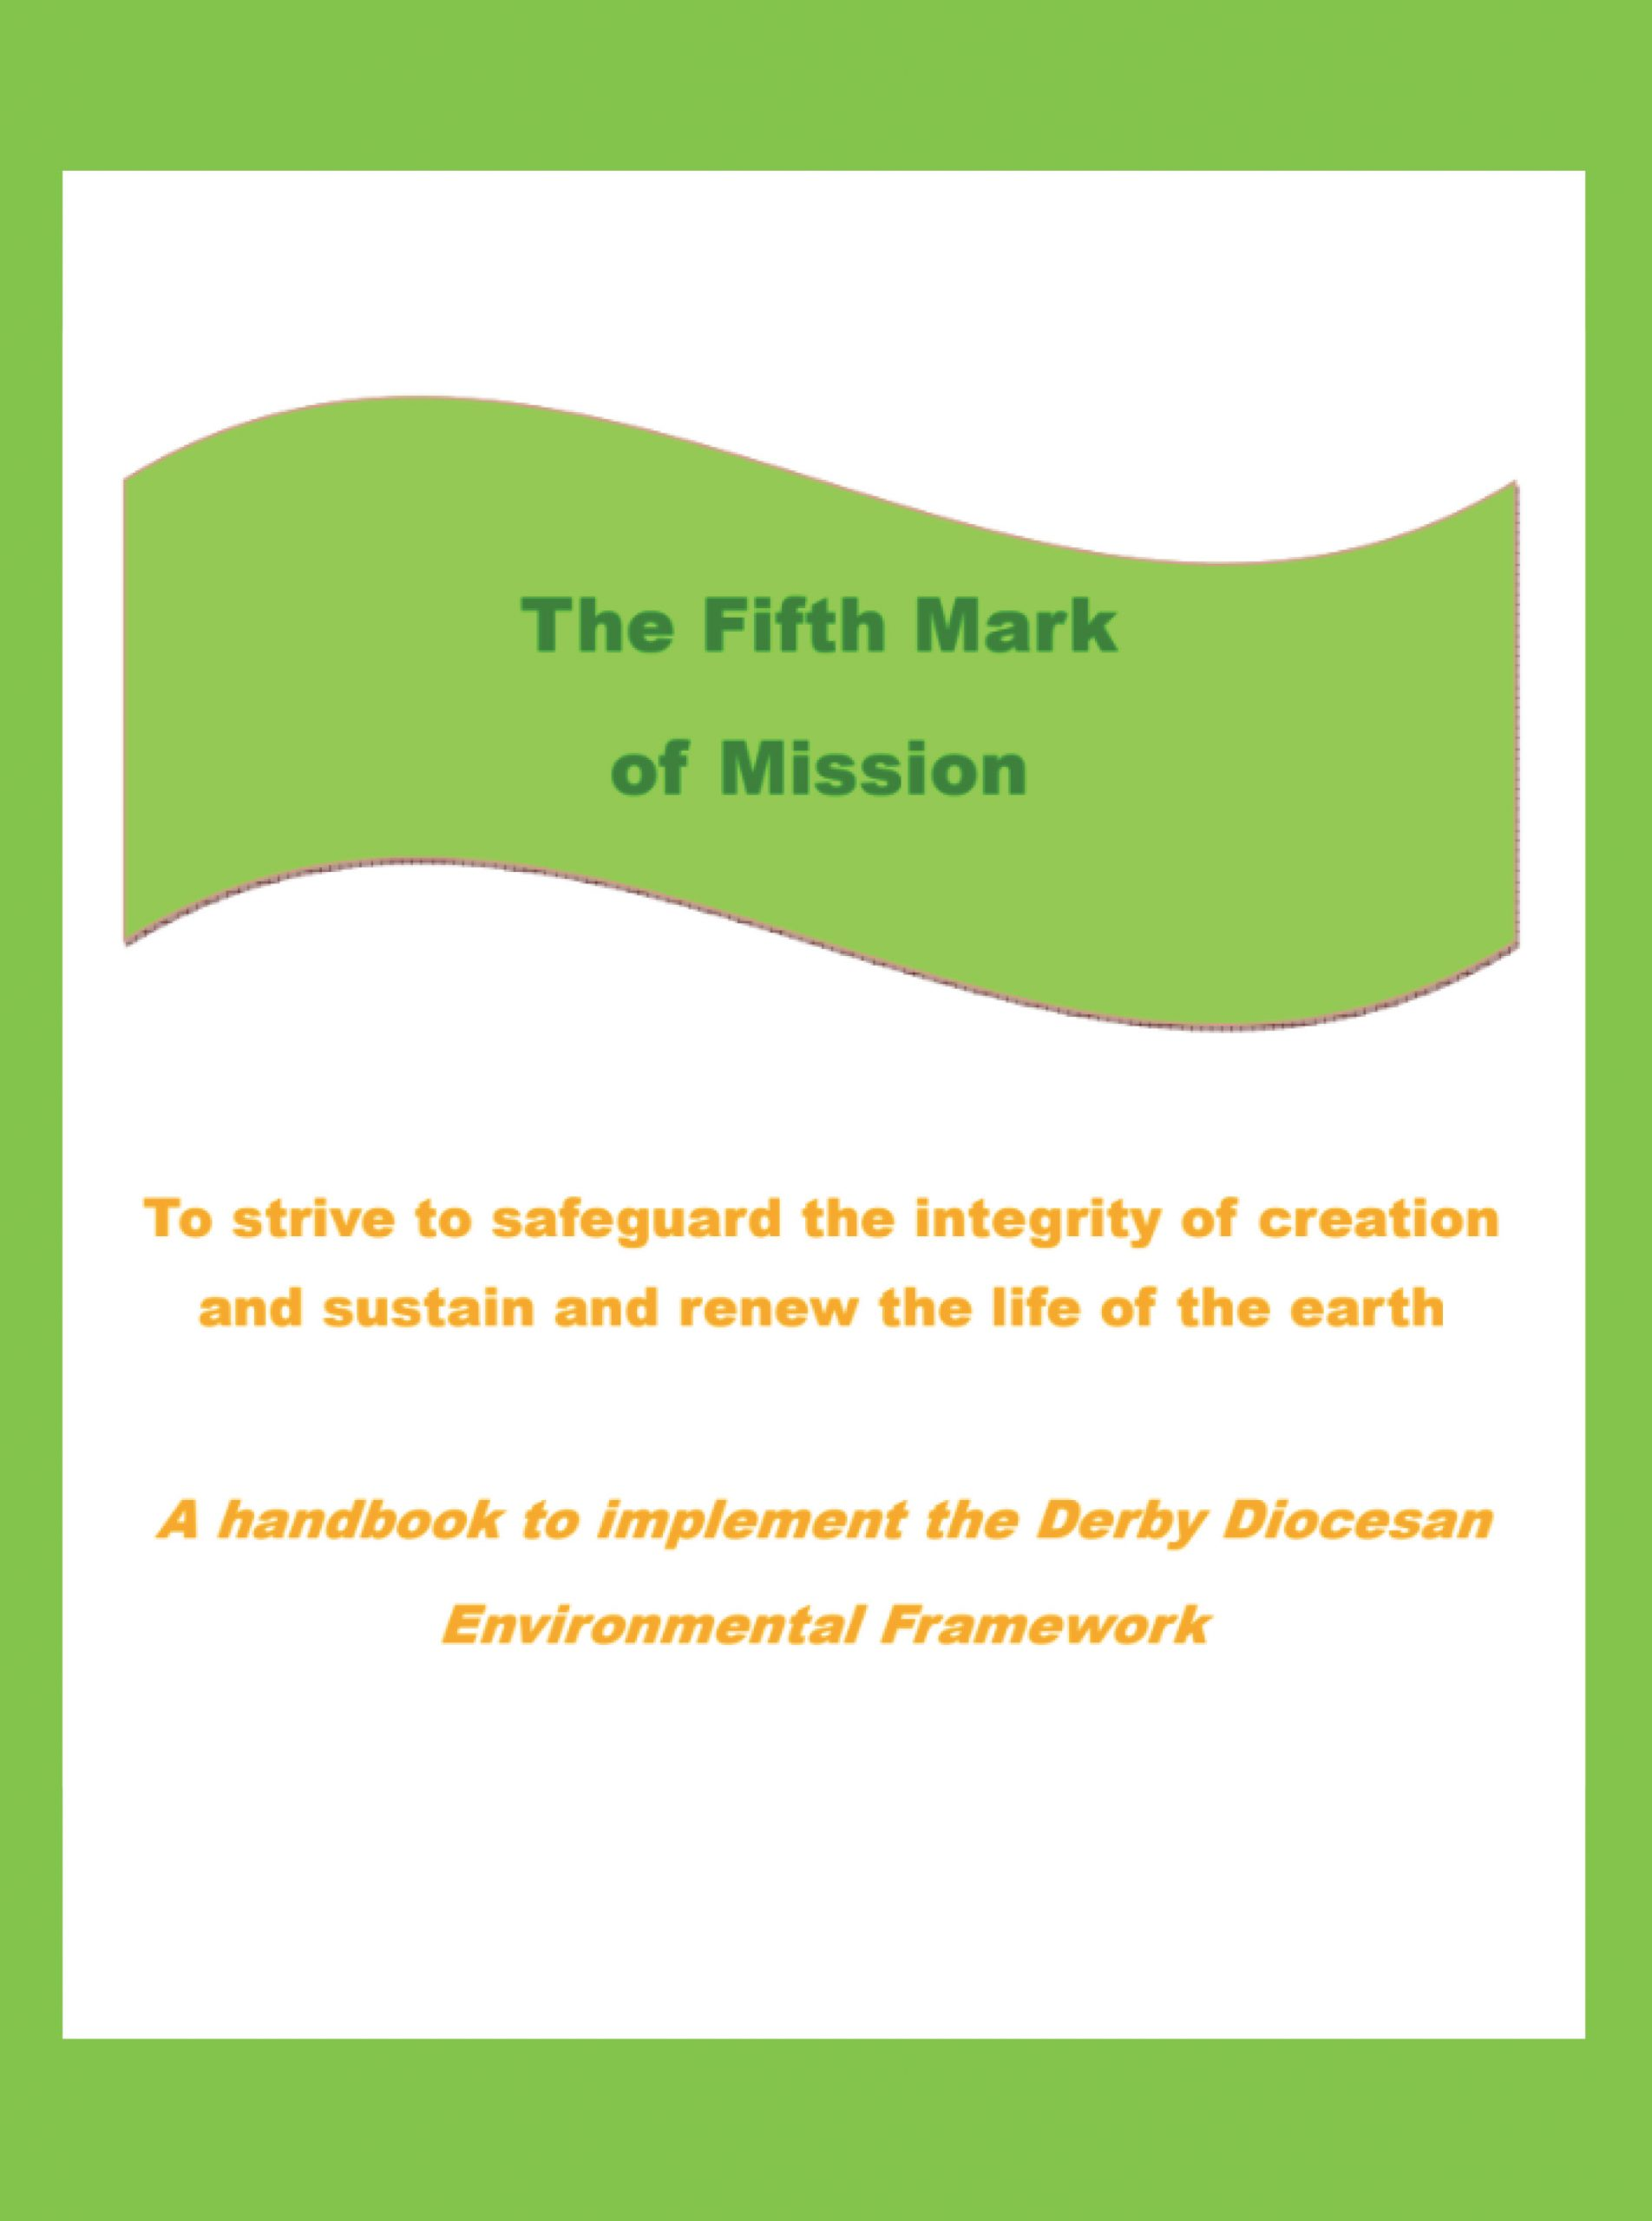 Fifth Mark of Mission - Derby